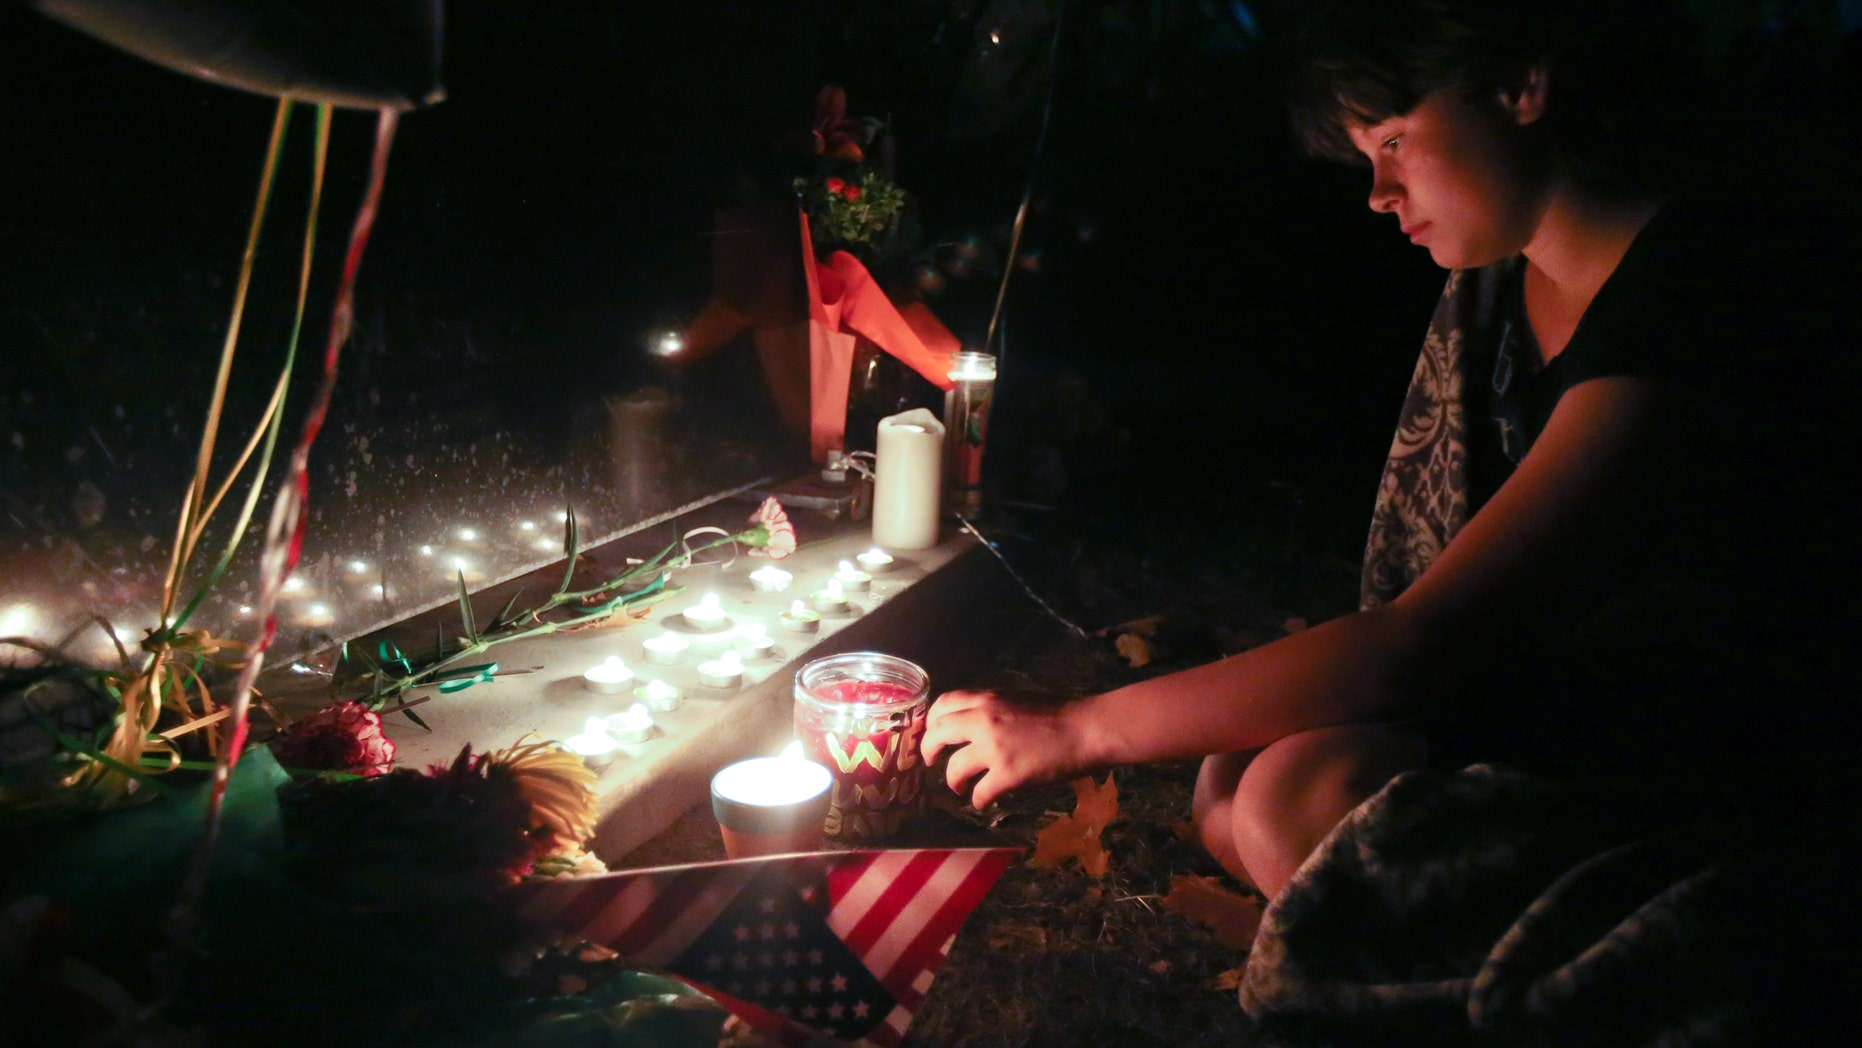 Oct. 23, 2013: Heaven Coker, 12, attends a candlelight vigil at Sparks Middle School in Sparks, Nev., in honor of slain teacher Michael Landsberry and two 12-year-old students who were injured after a fellow student open fire at the school on Monday, before turning the gun on himself.